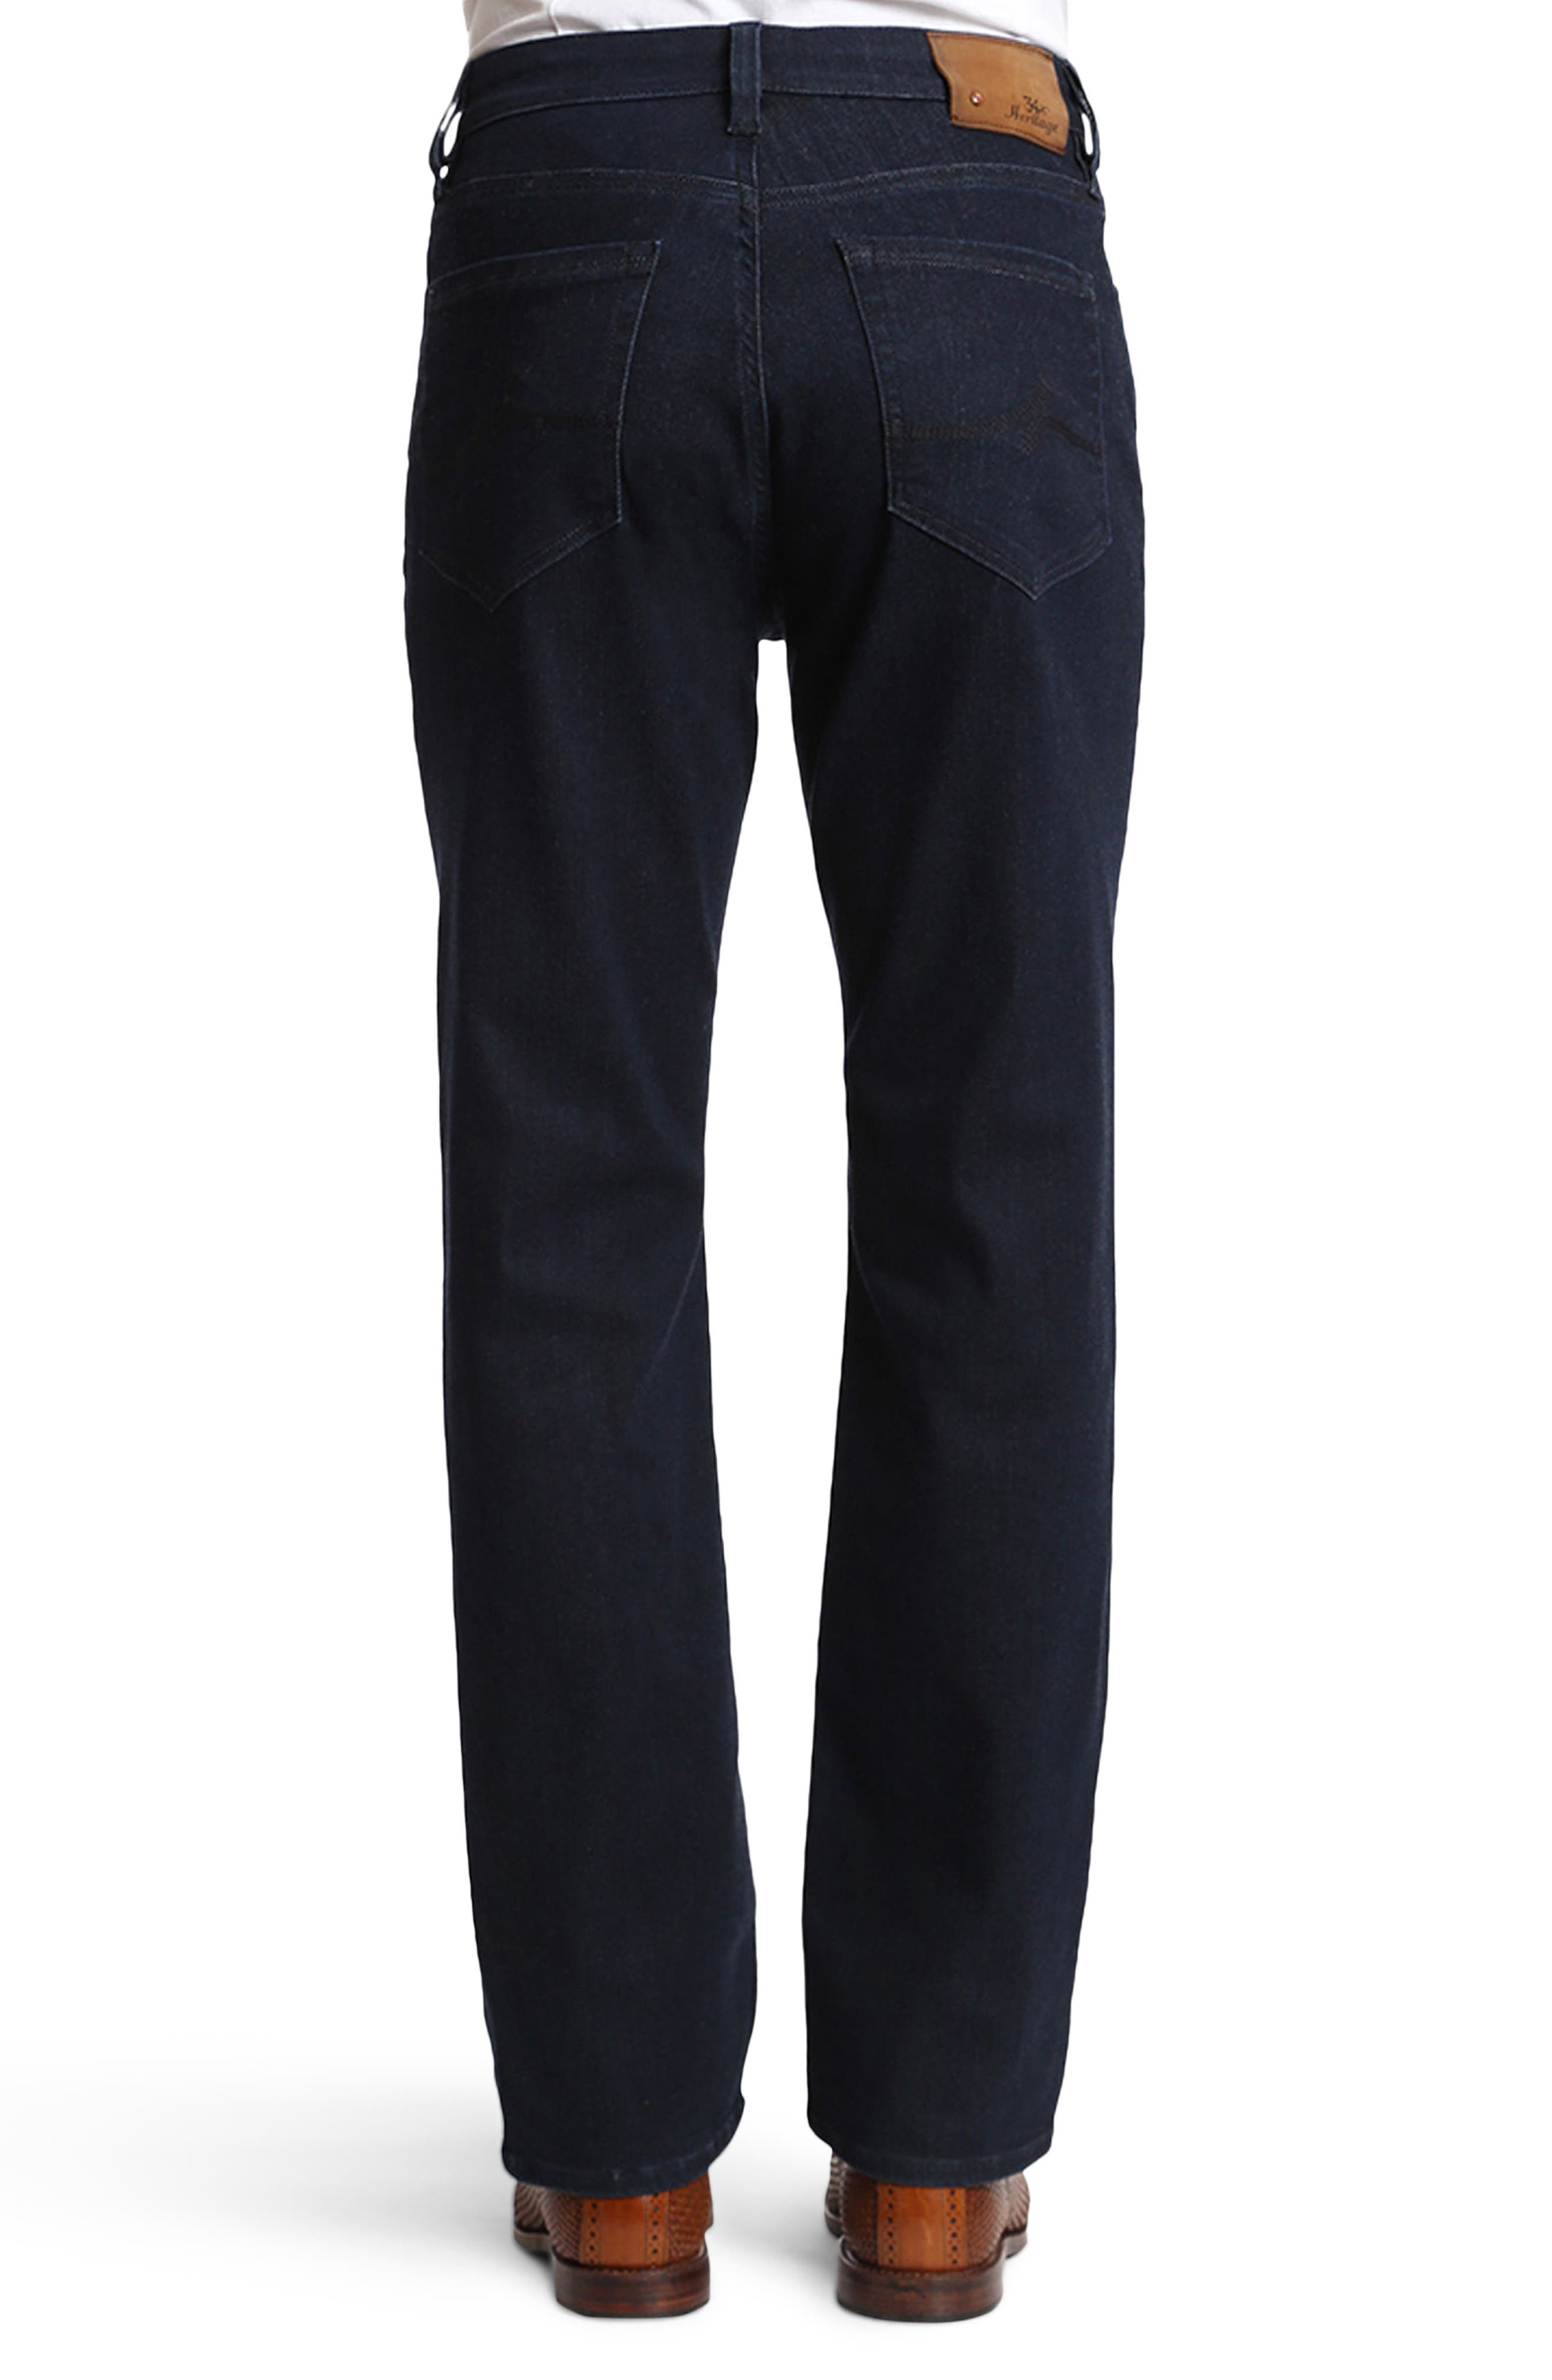 Alternate Image 2  - 34 Heritage Charisma Relaxed Fit Jeans (Rinse Rome)